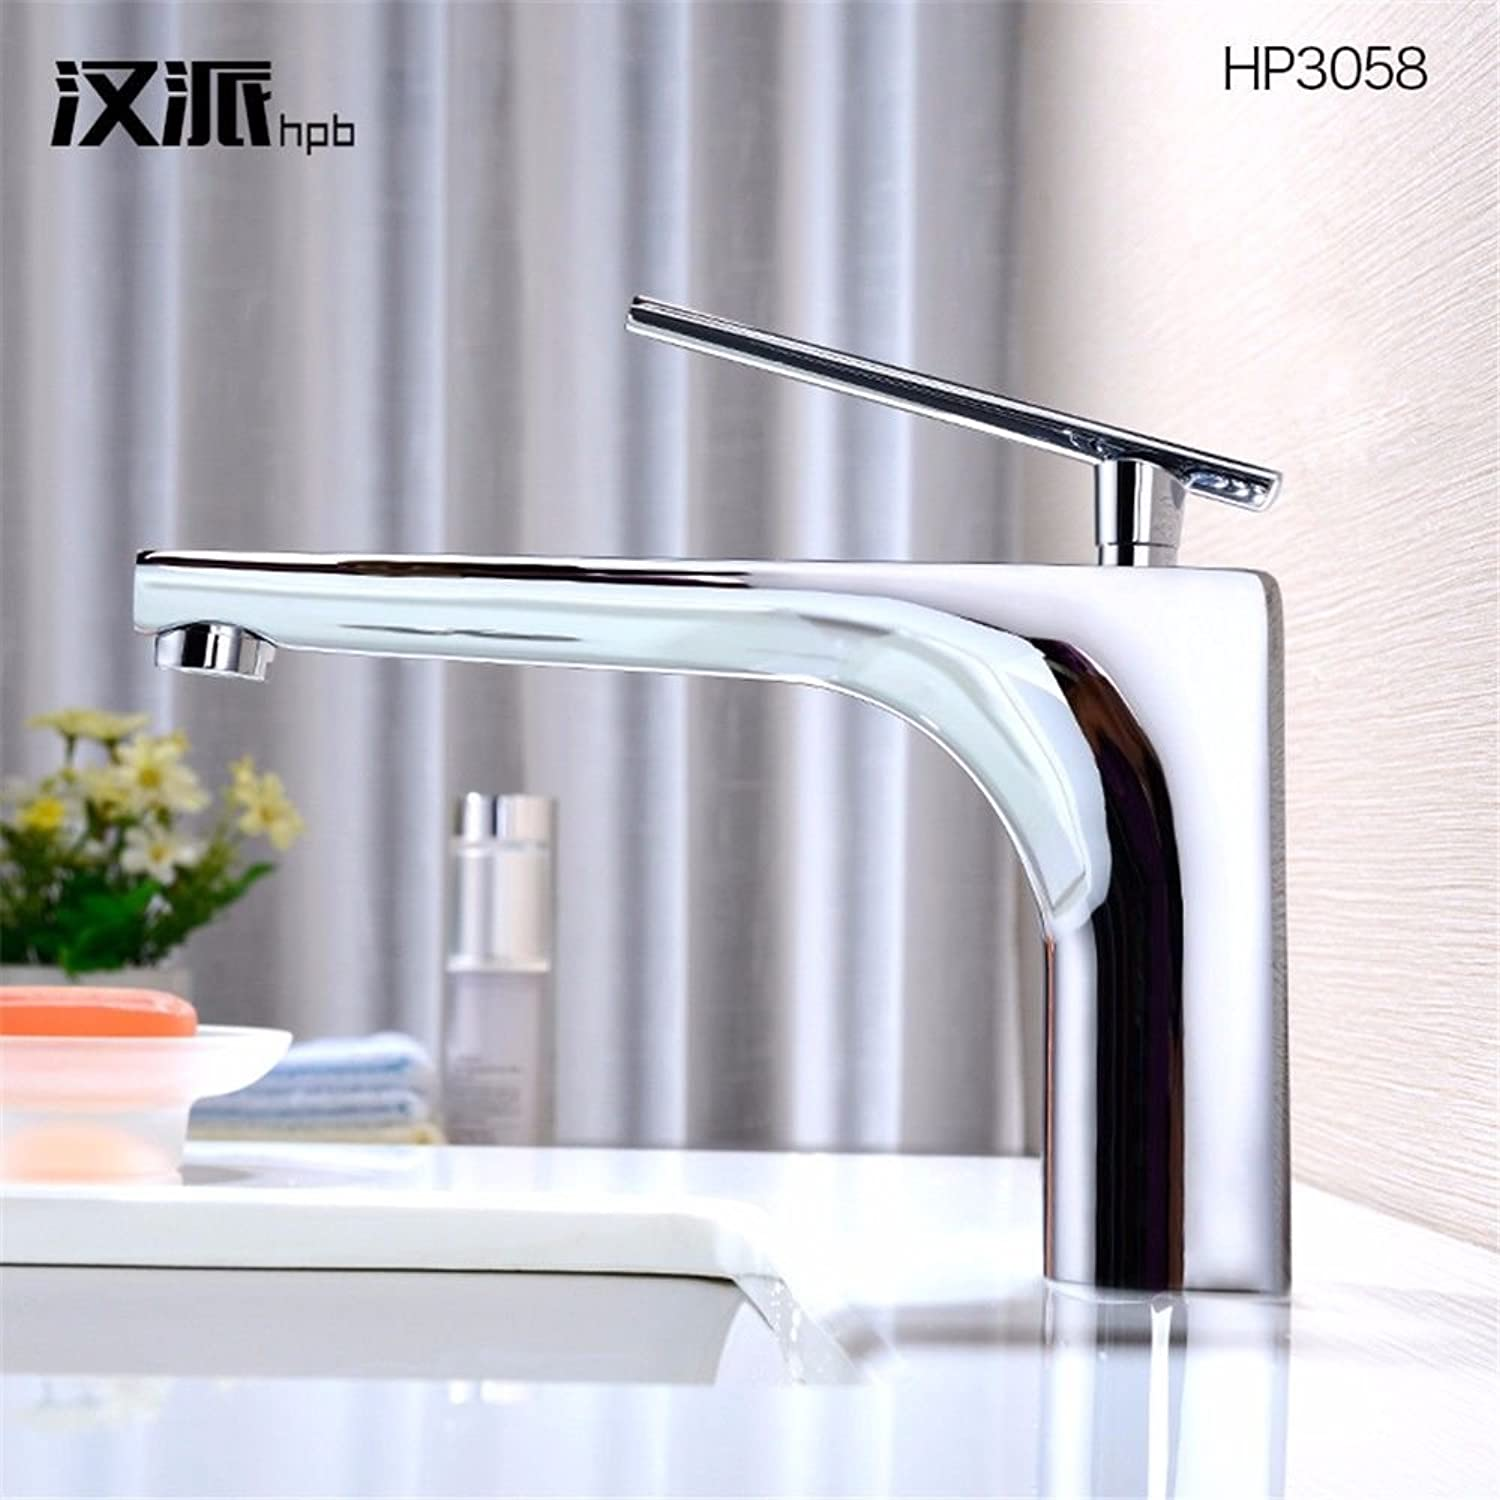 S.Twl.E Sink Mixer Tap Faucet Bathroom Kitchen Basin Tap Leakproof Save Water Copper Cold And Hot Tub